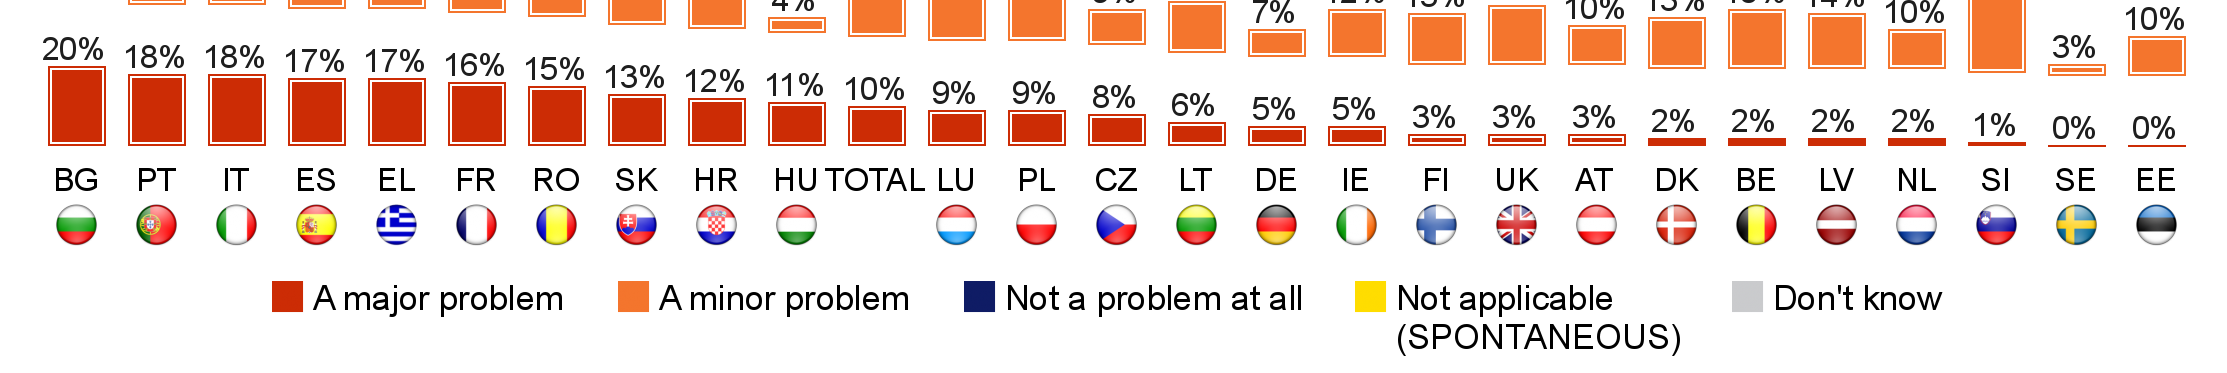 FLASH EUROBAROMETER Overall, Bulgaria (52) and France (50) are the only countries where at least half of all companies say that a lack of security in cross-border payments is a problem to some degree.